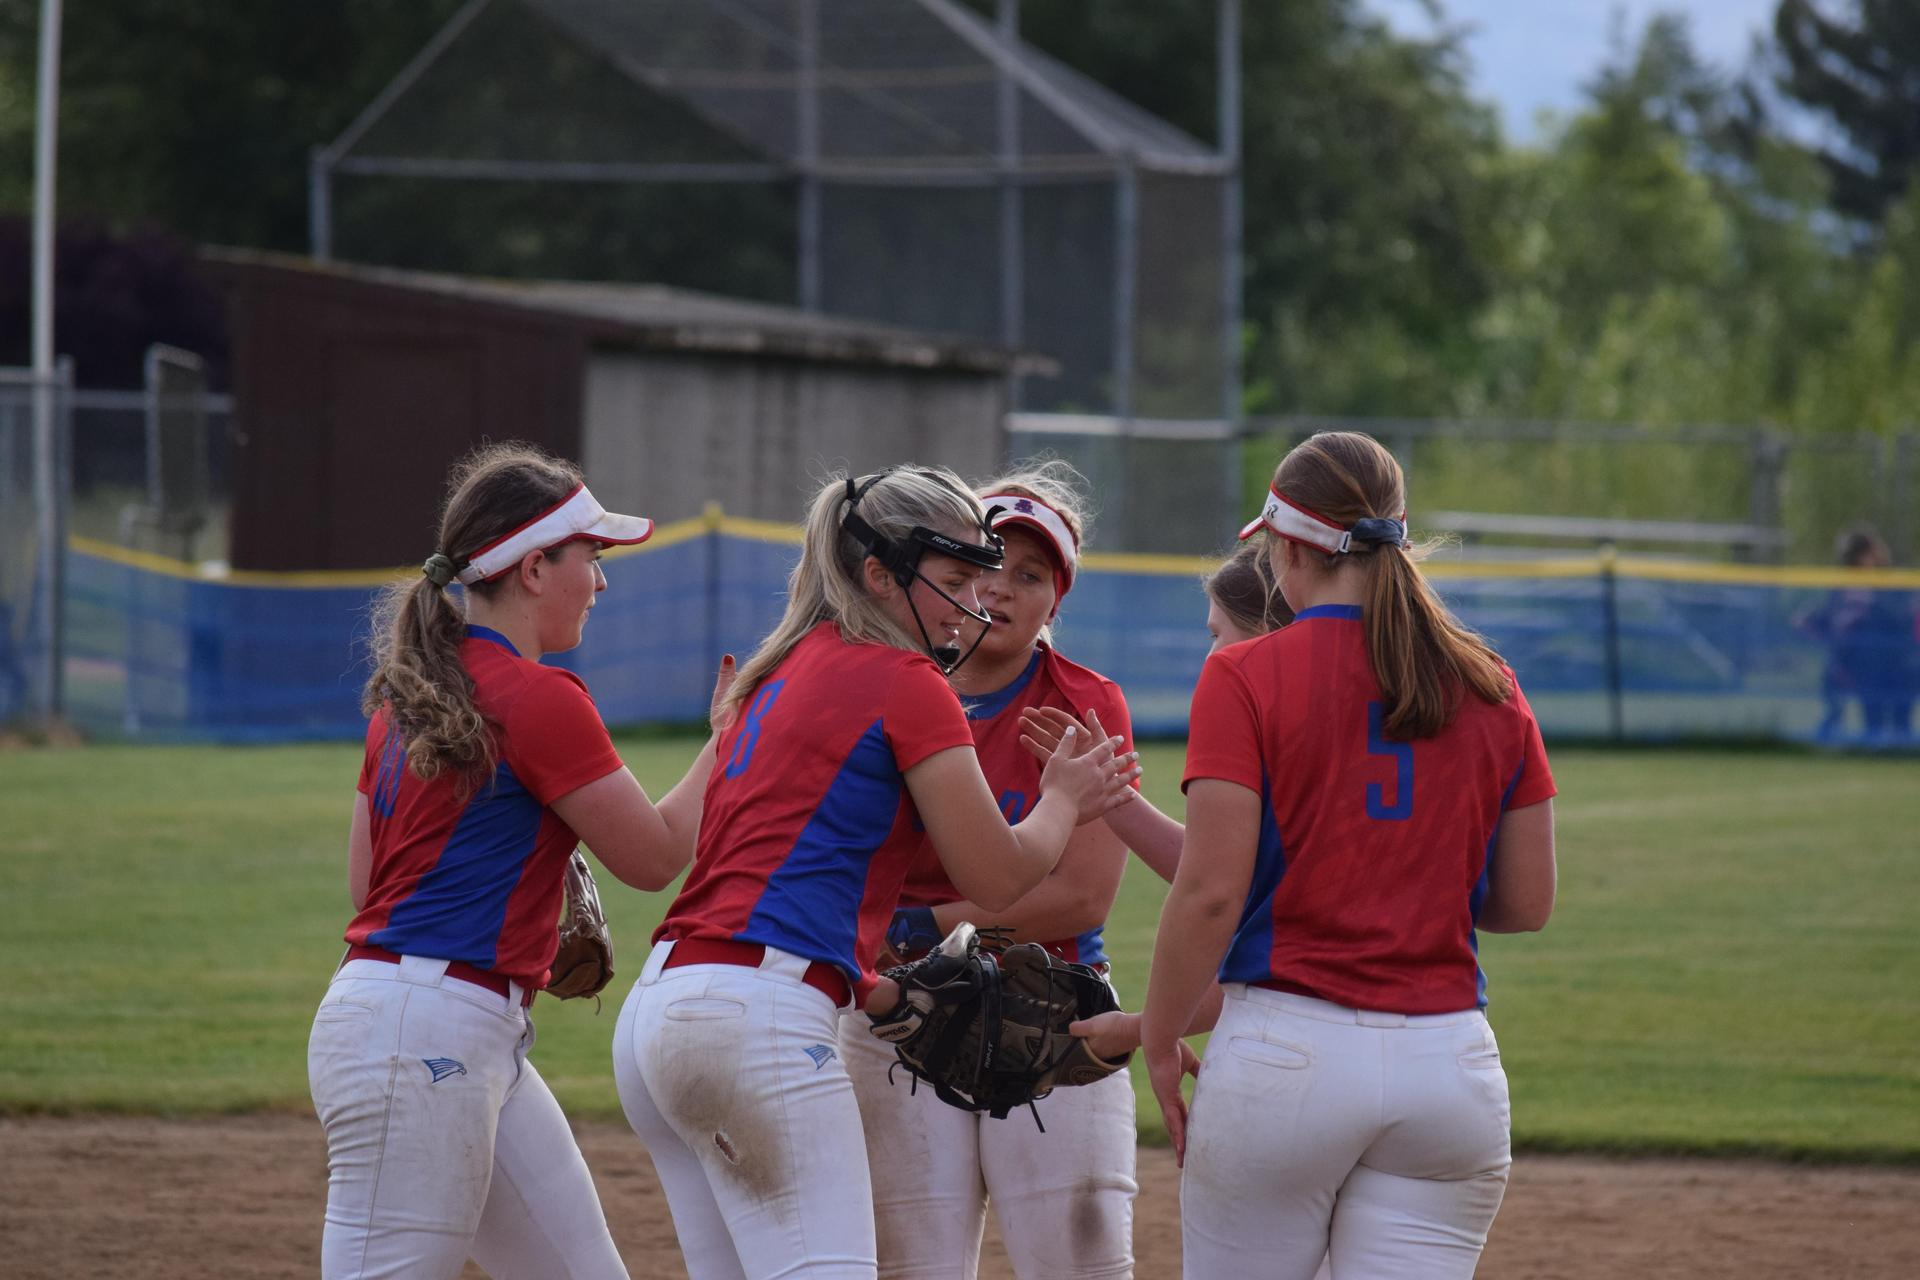 softball players meet at the mound